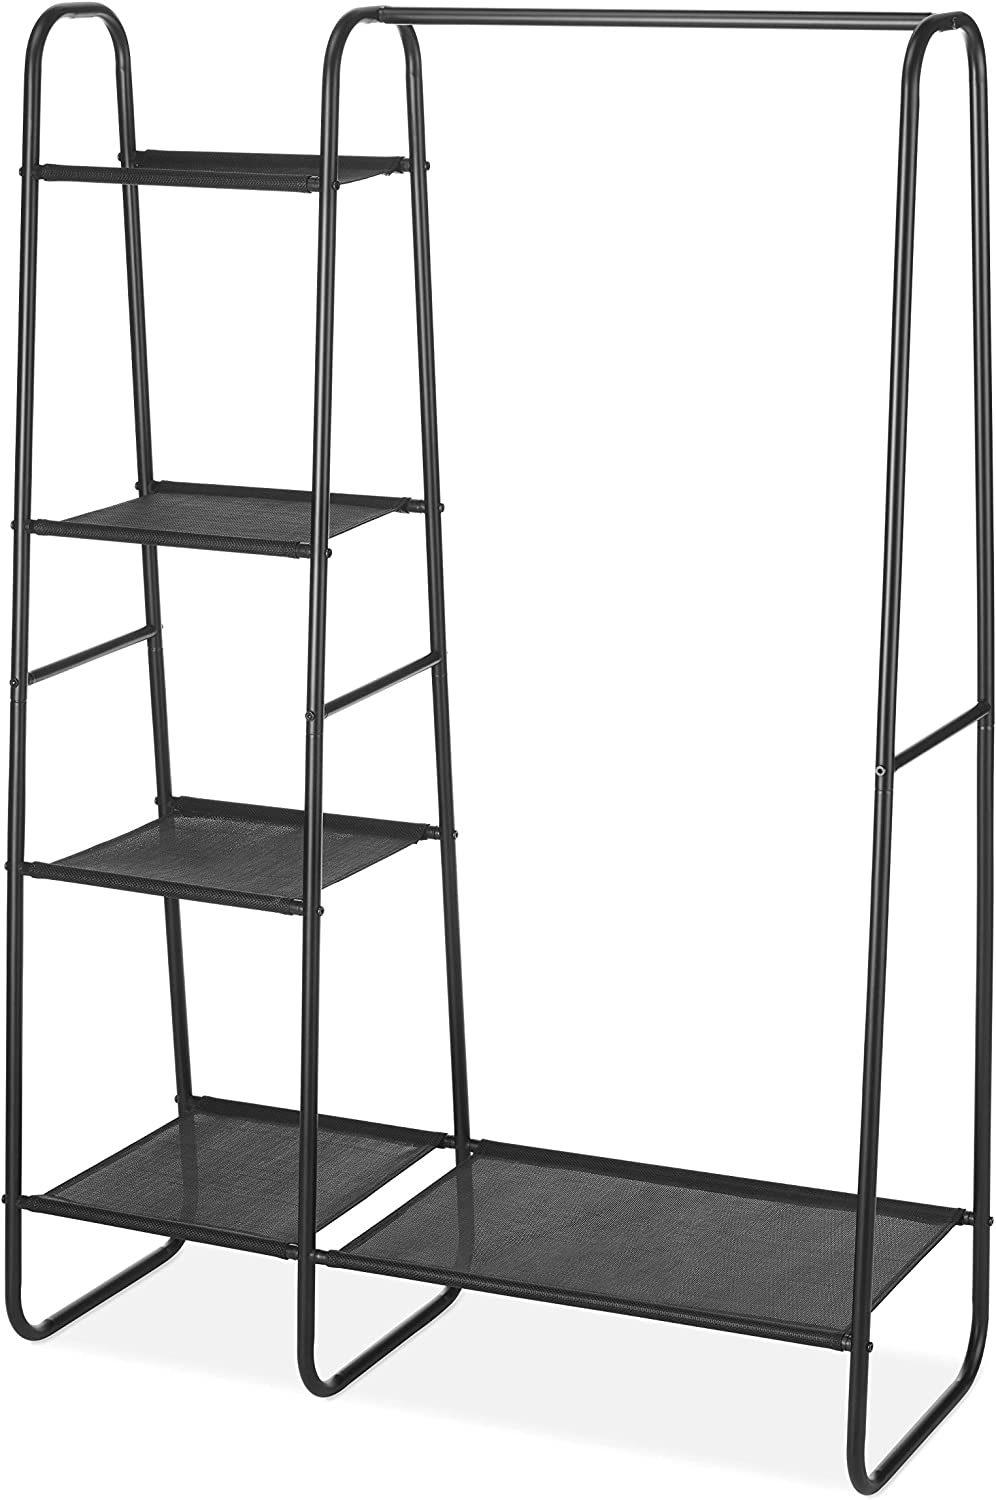 Whitmor Freestanding Wardrobe w Fine Mesh Shelves Shipping included Fabric for Por Now free shipping